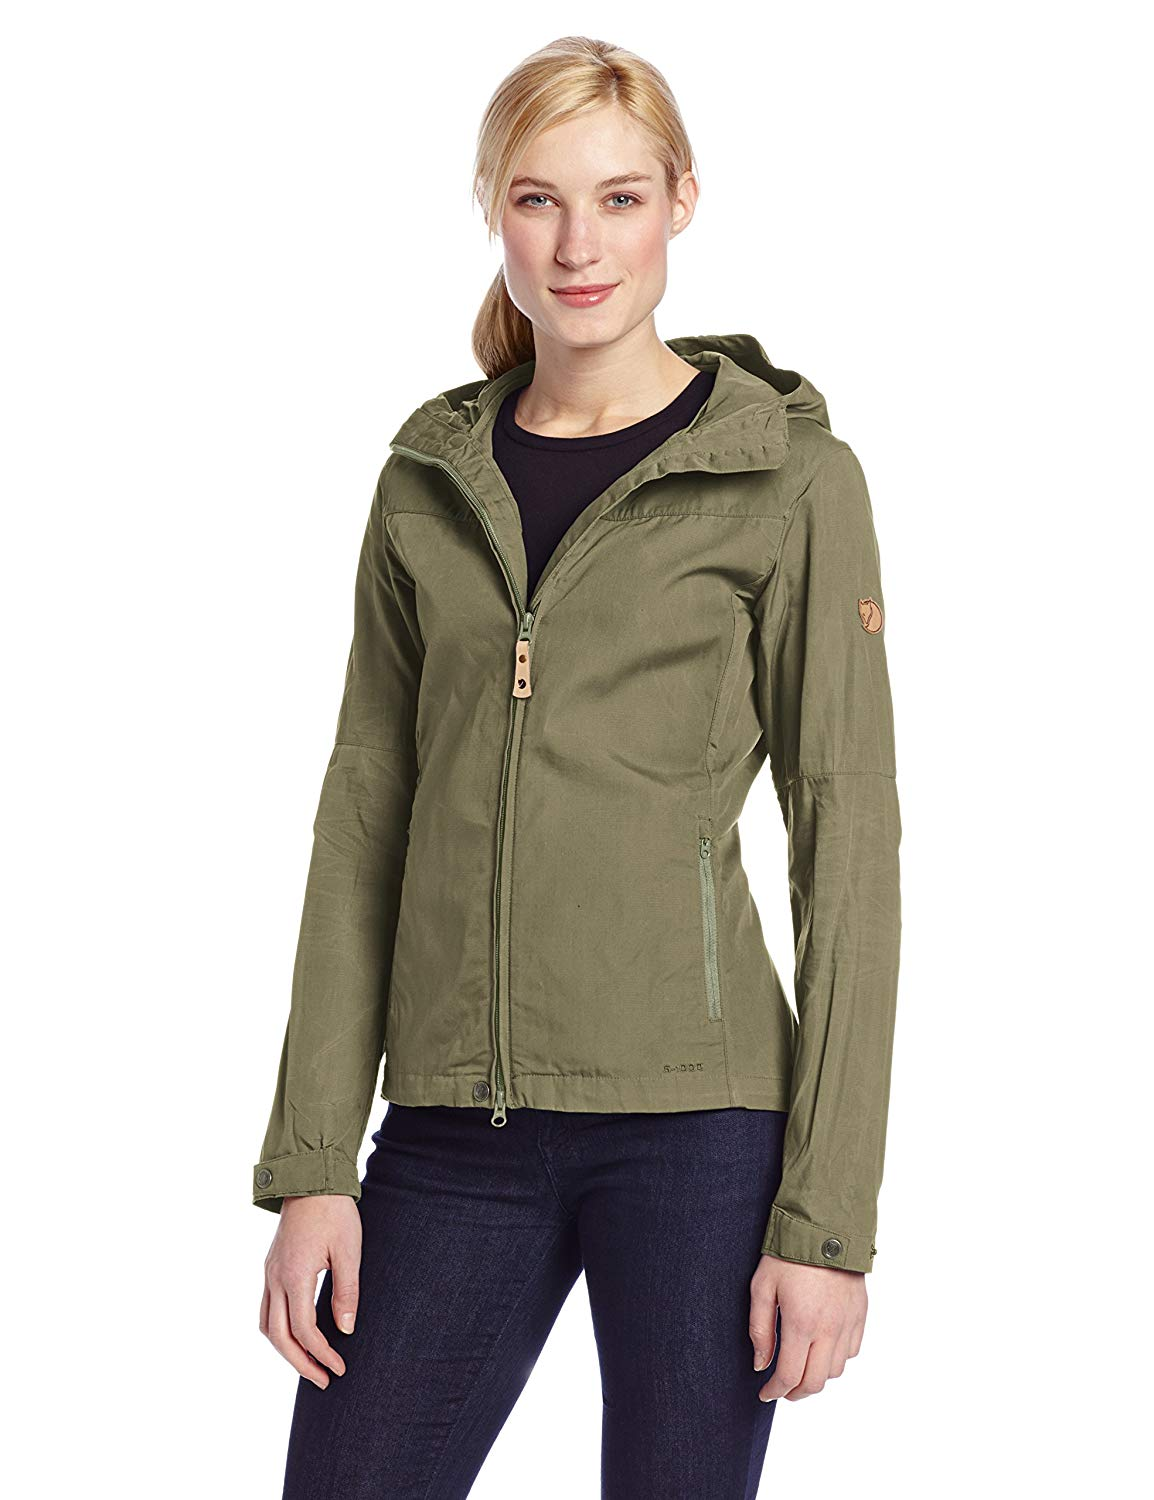 The front of Kate's Fjallraven Stina jacket